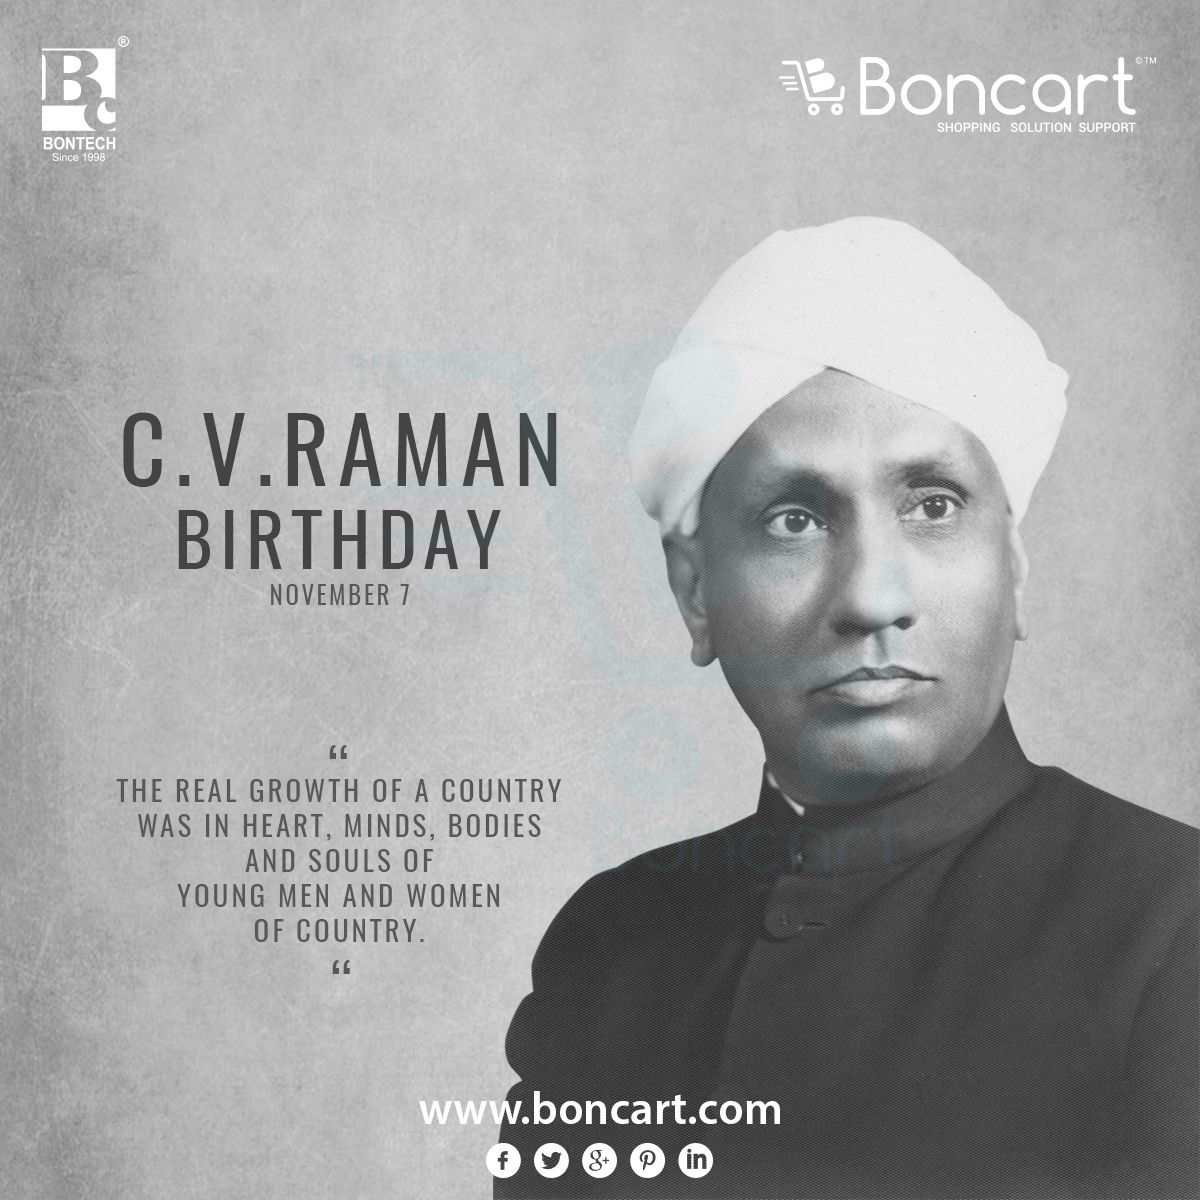 Happy Birthday Dr Strangelove In 2019: C V Raman Birthday November 7